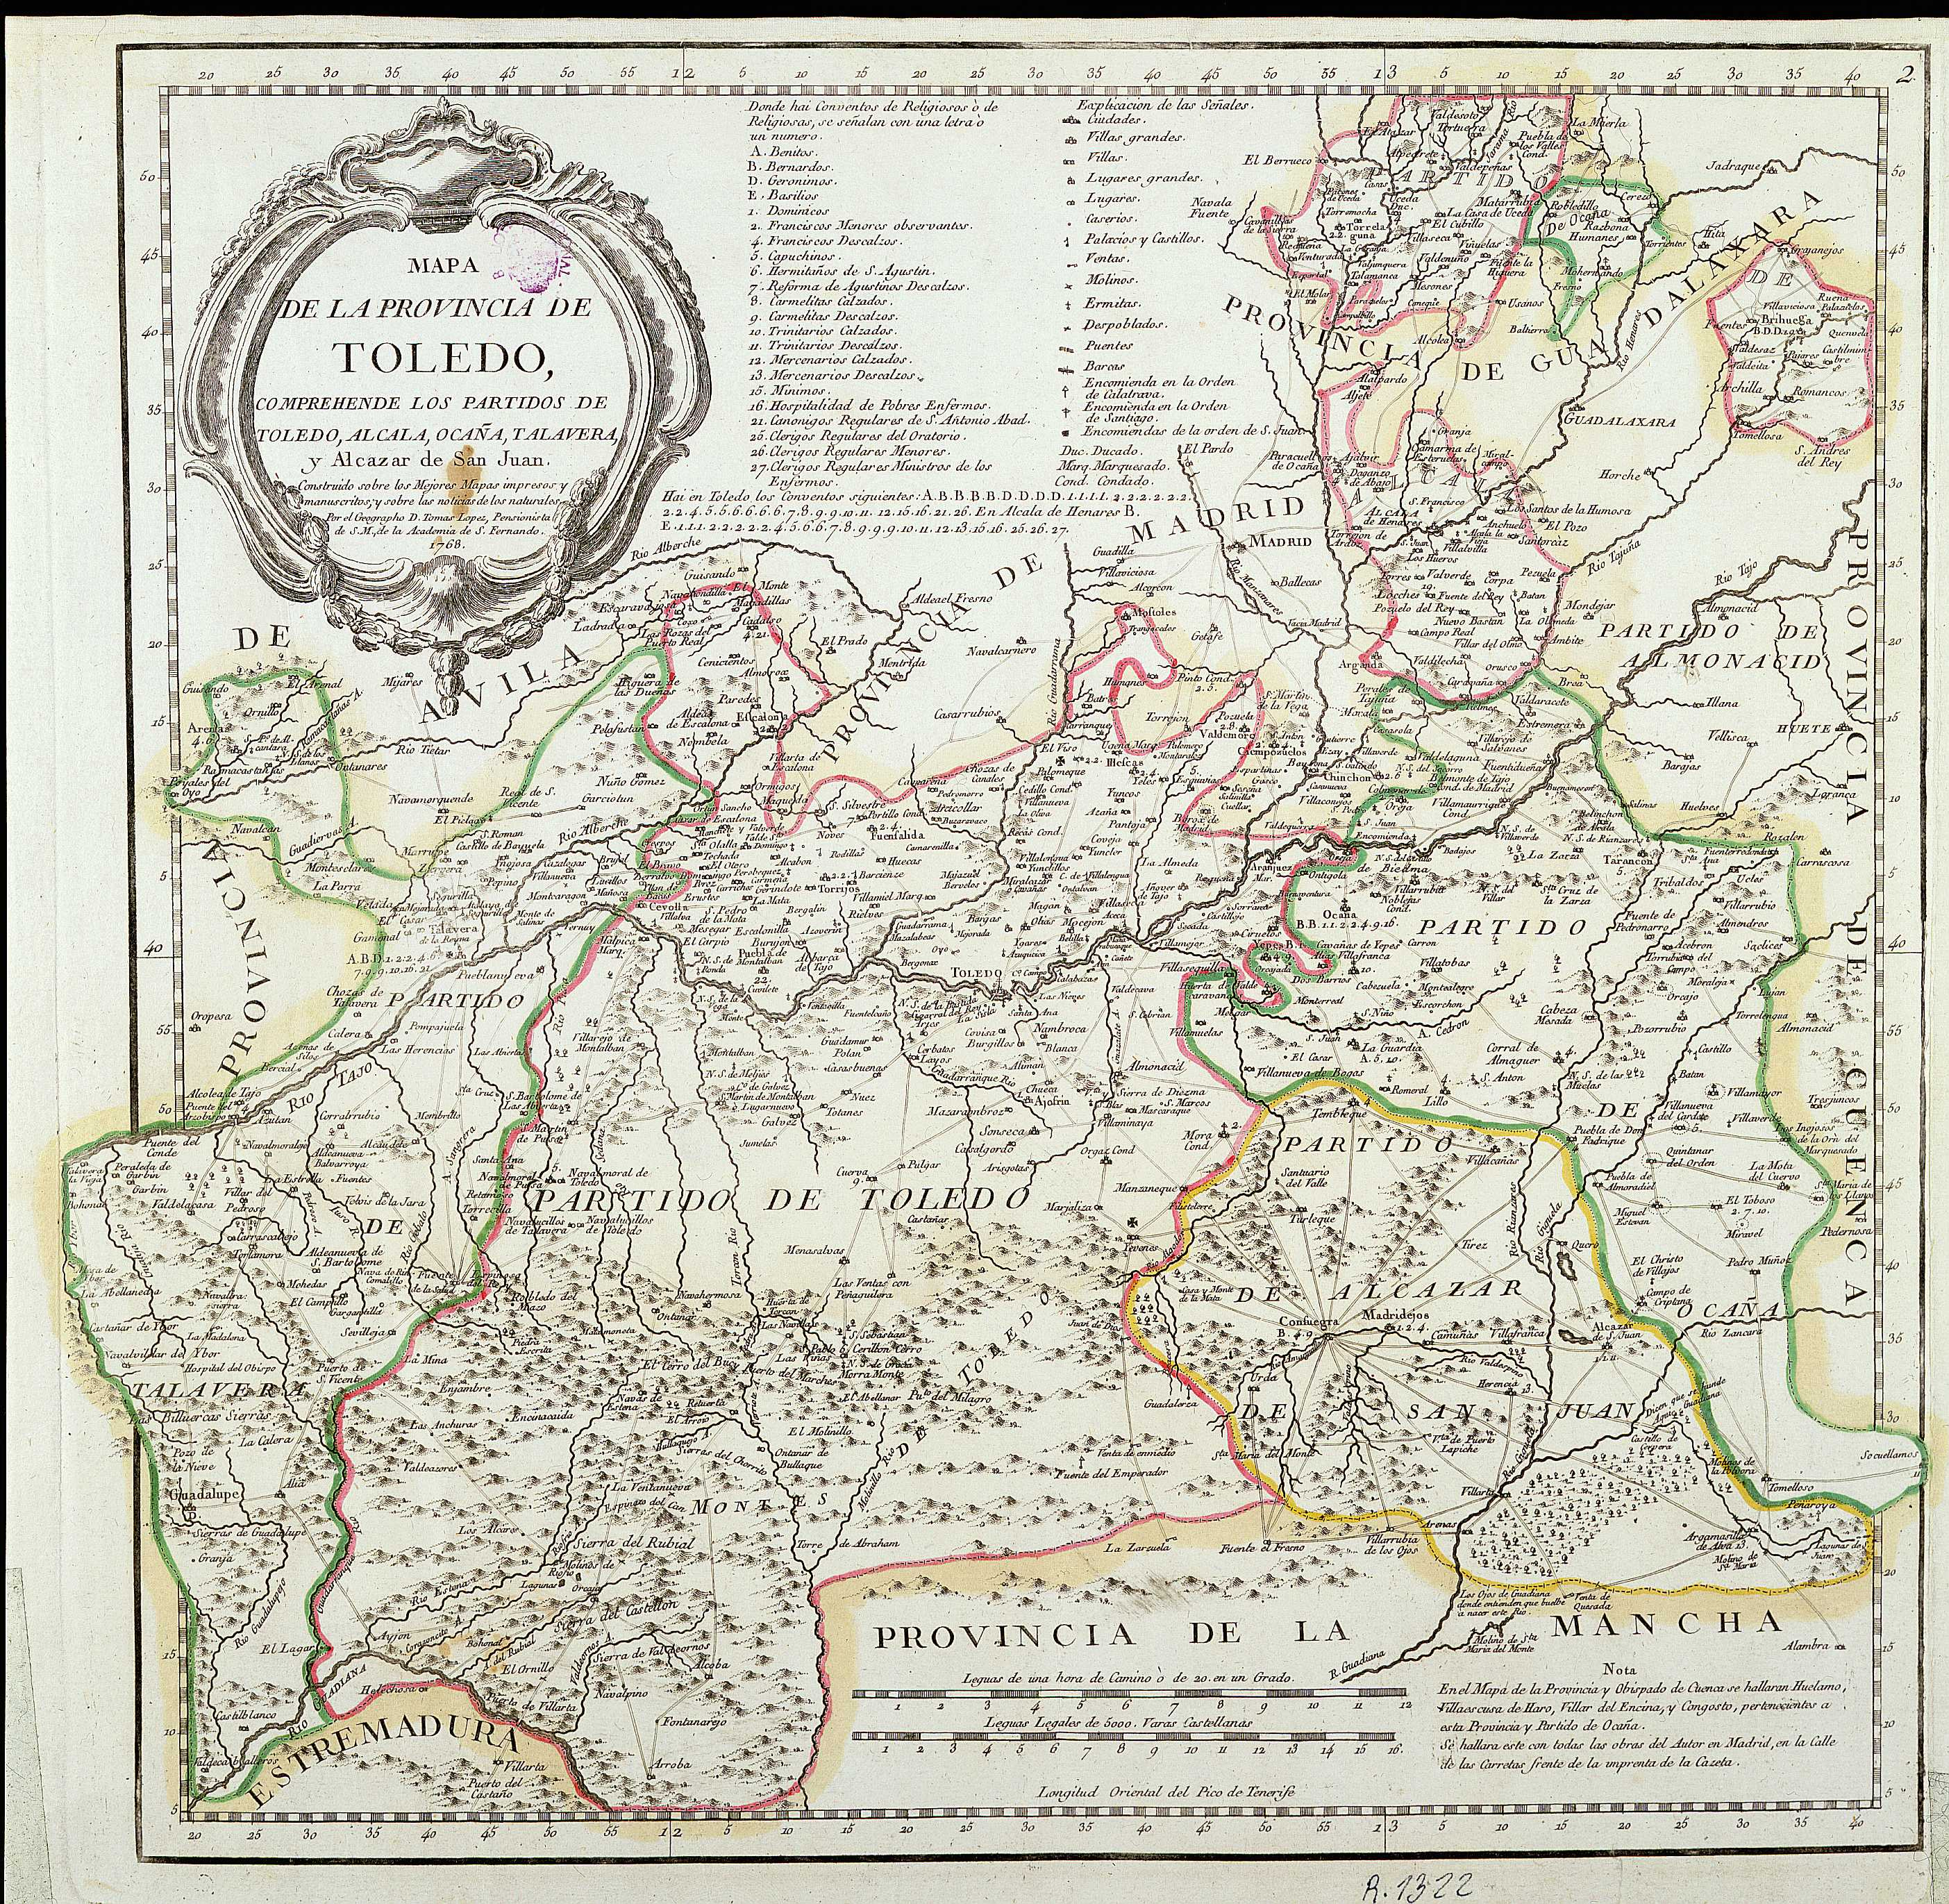 Map of the province of Toledo 1768